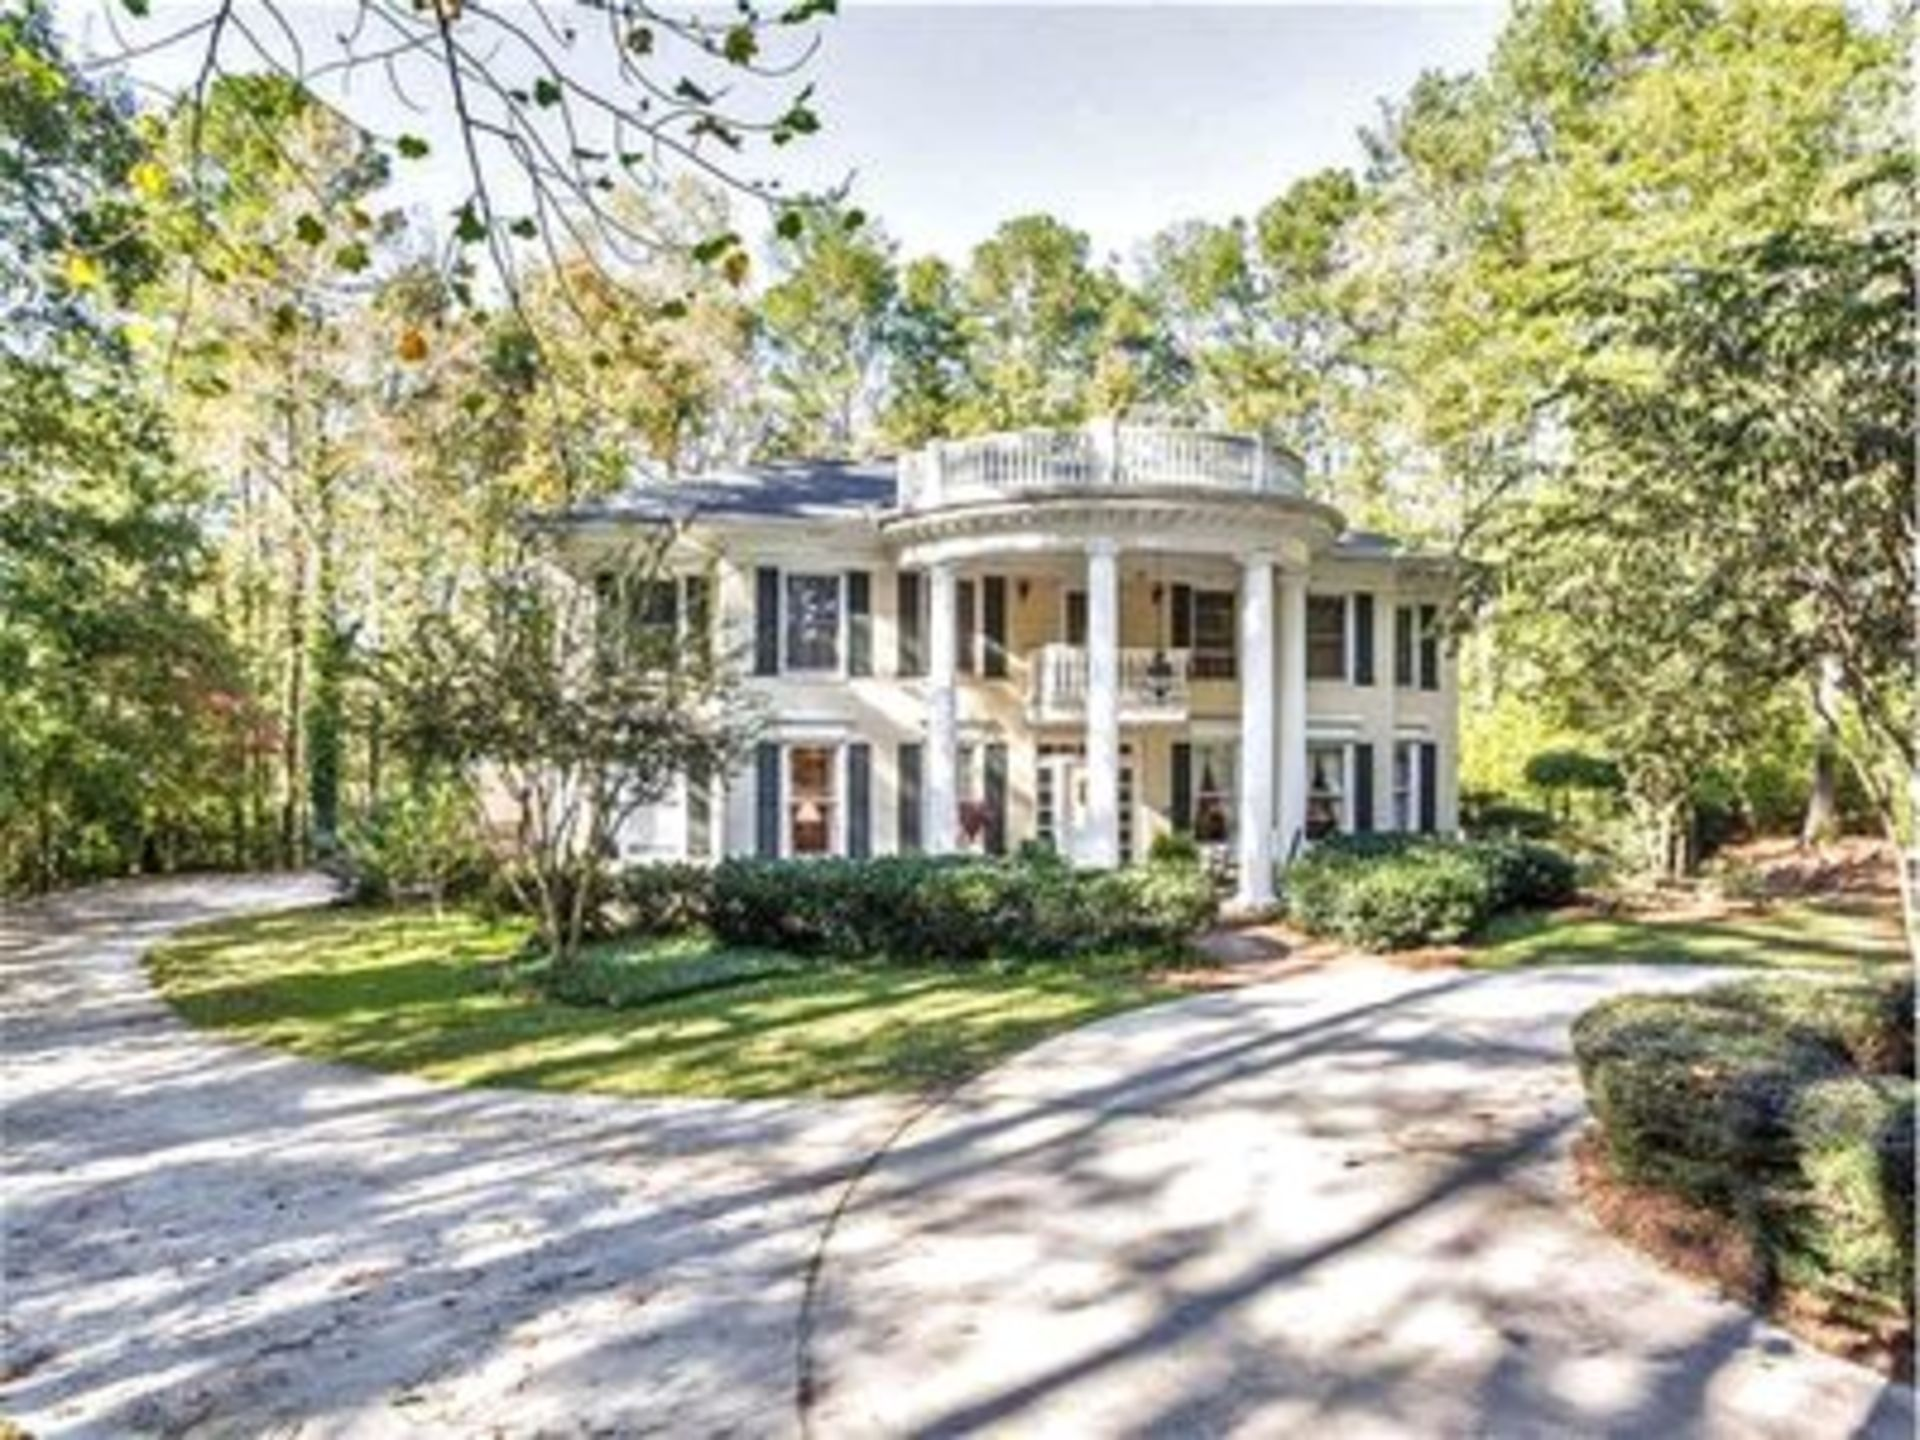 Lessons From Listing Photos: See This Southern Estate Go From Midcentury to Modern Farmhouse